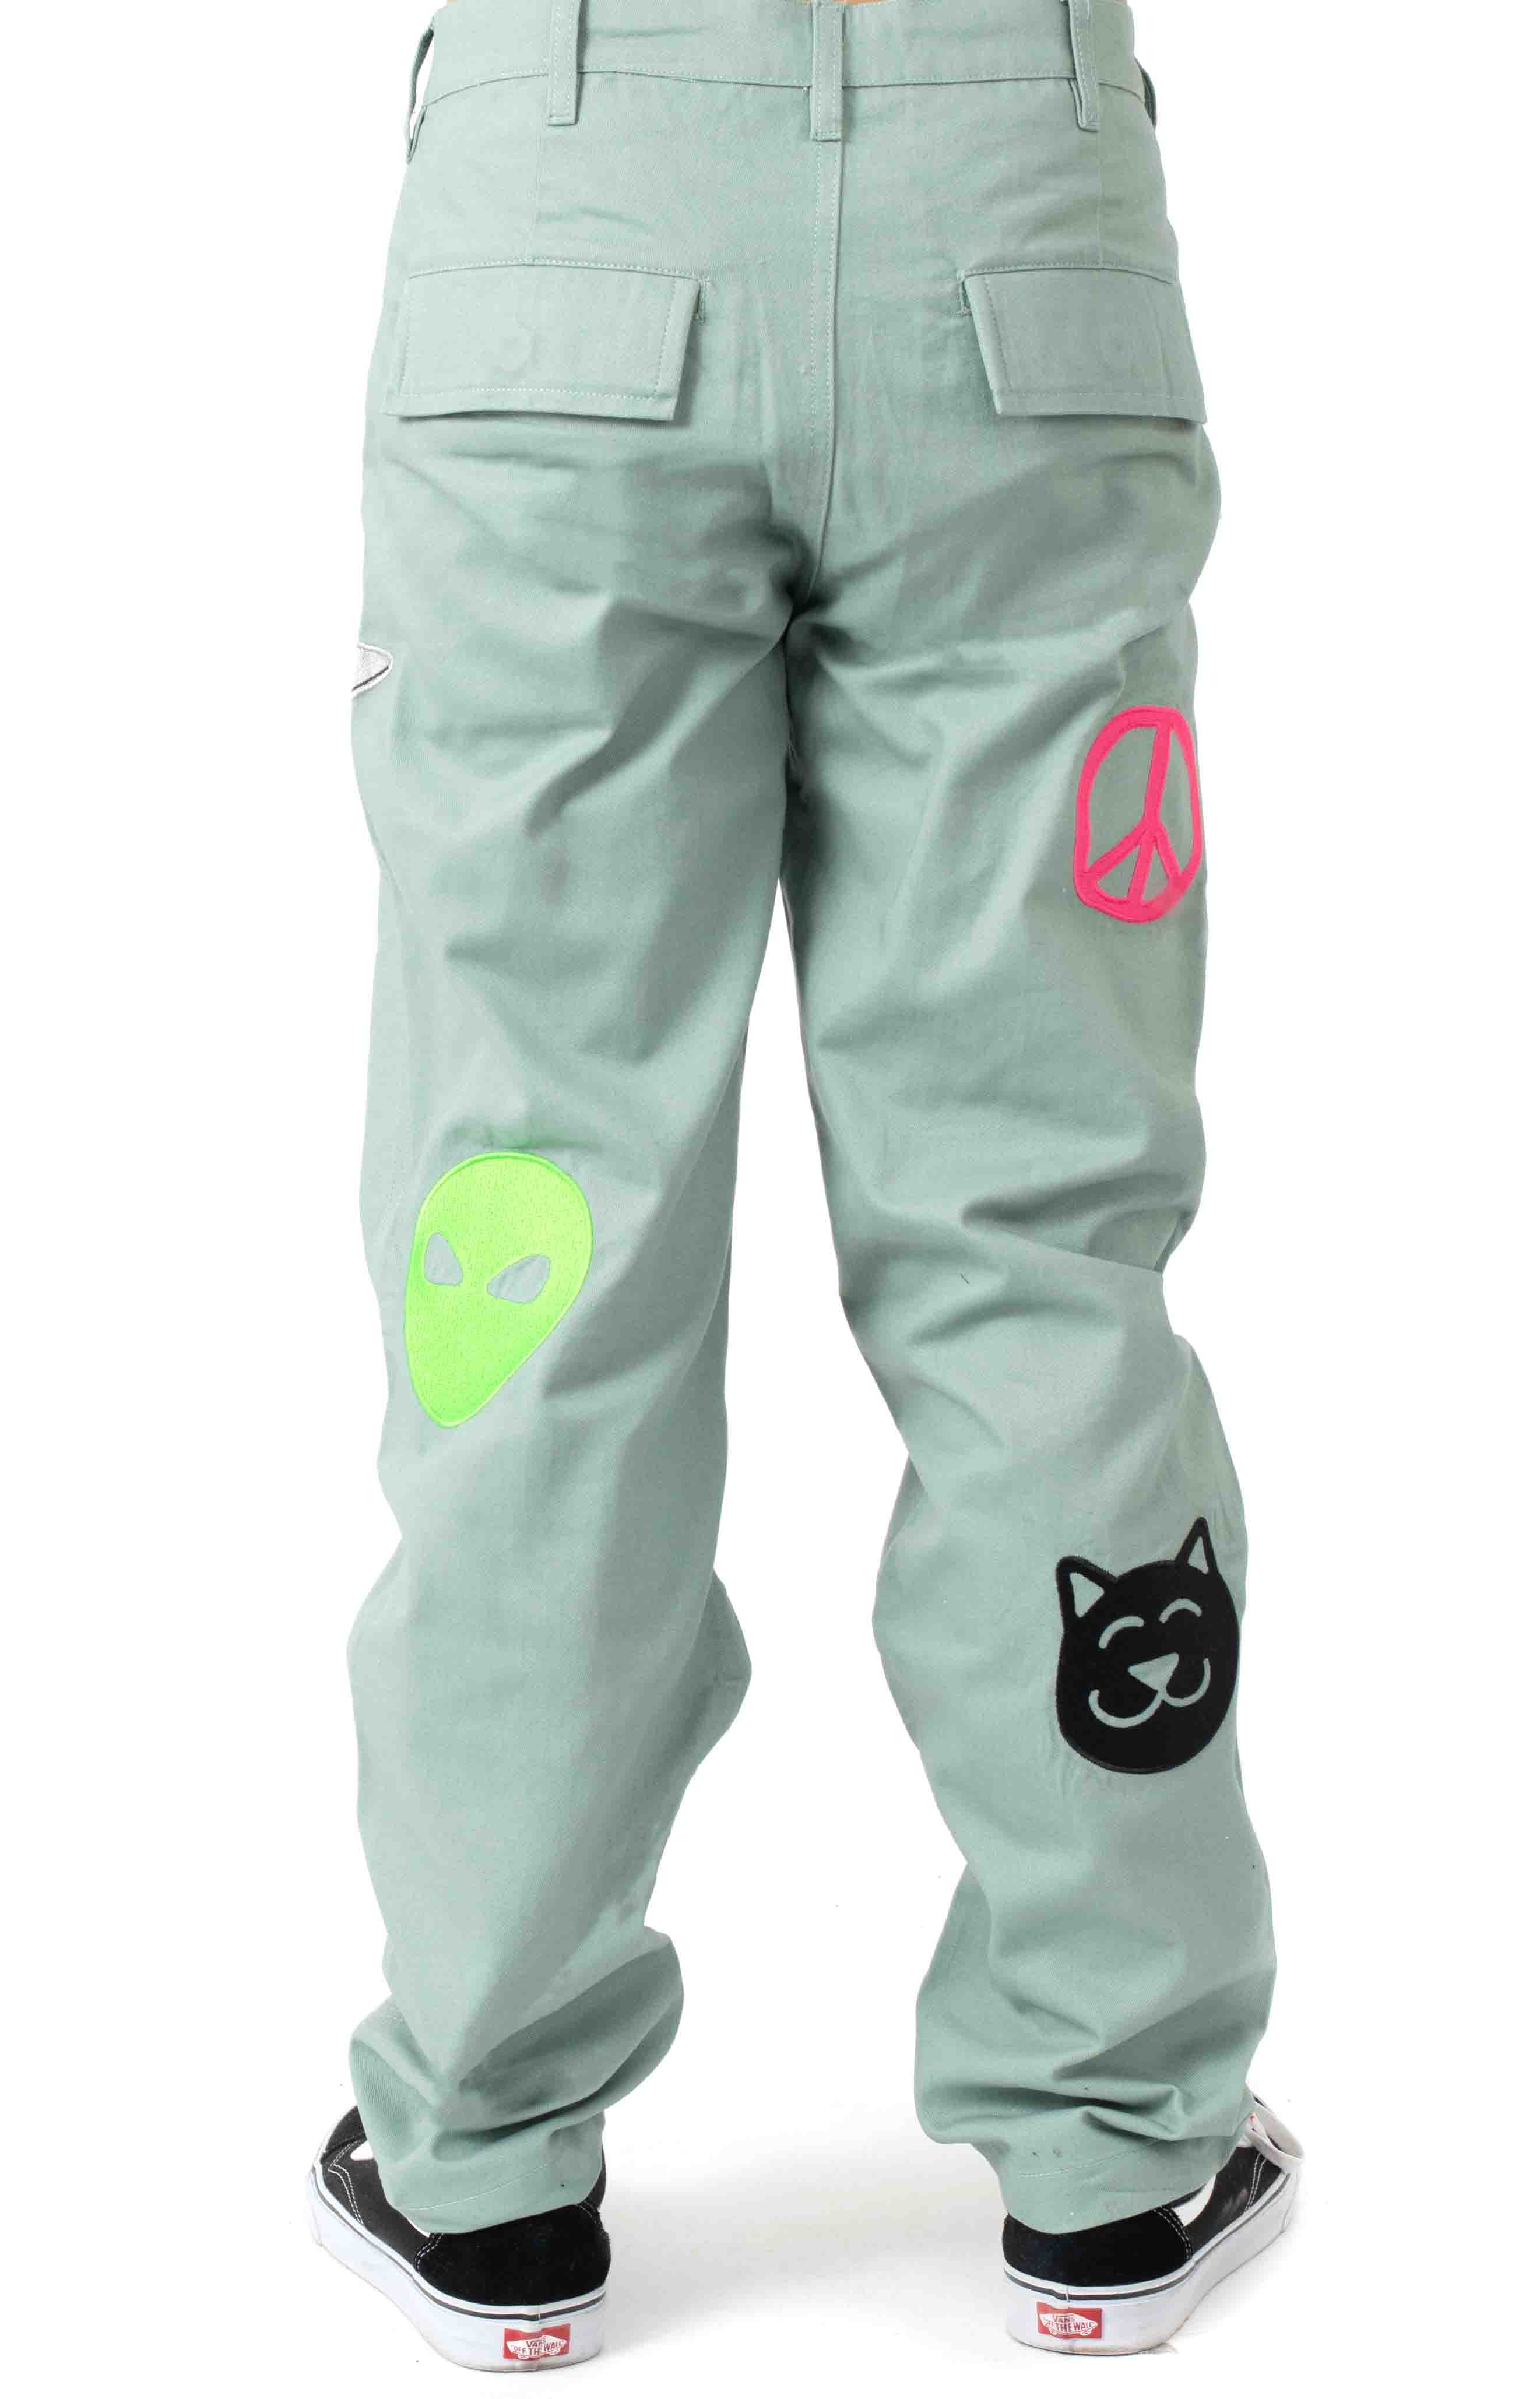 Play Date Cotton Twill Embroidered Pants - Pistacho  3